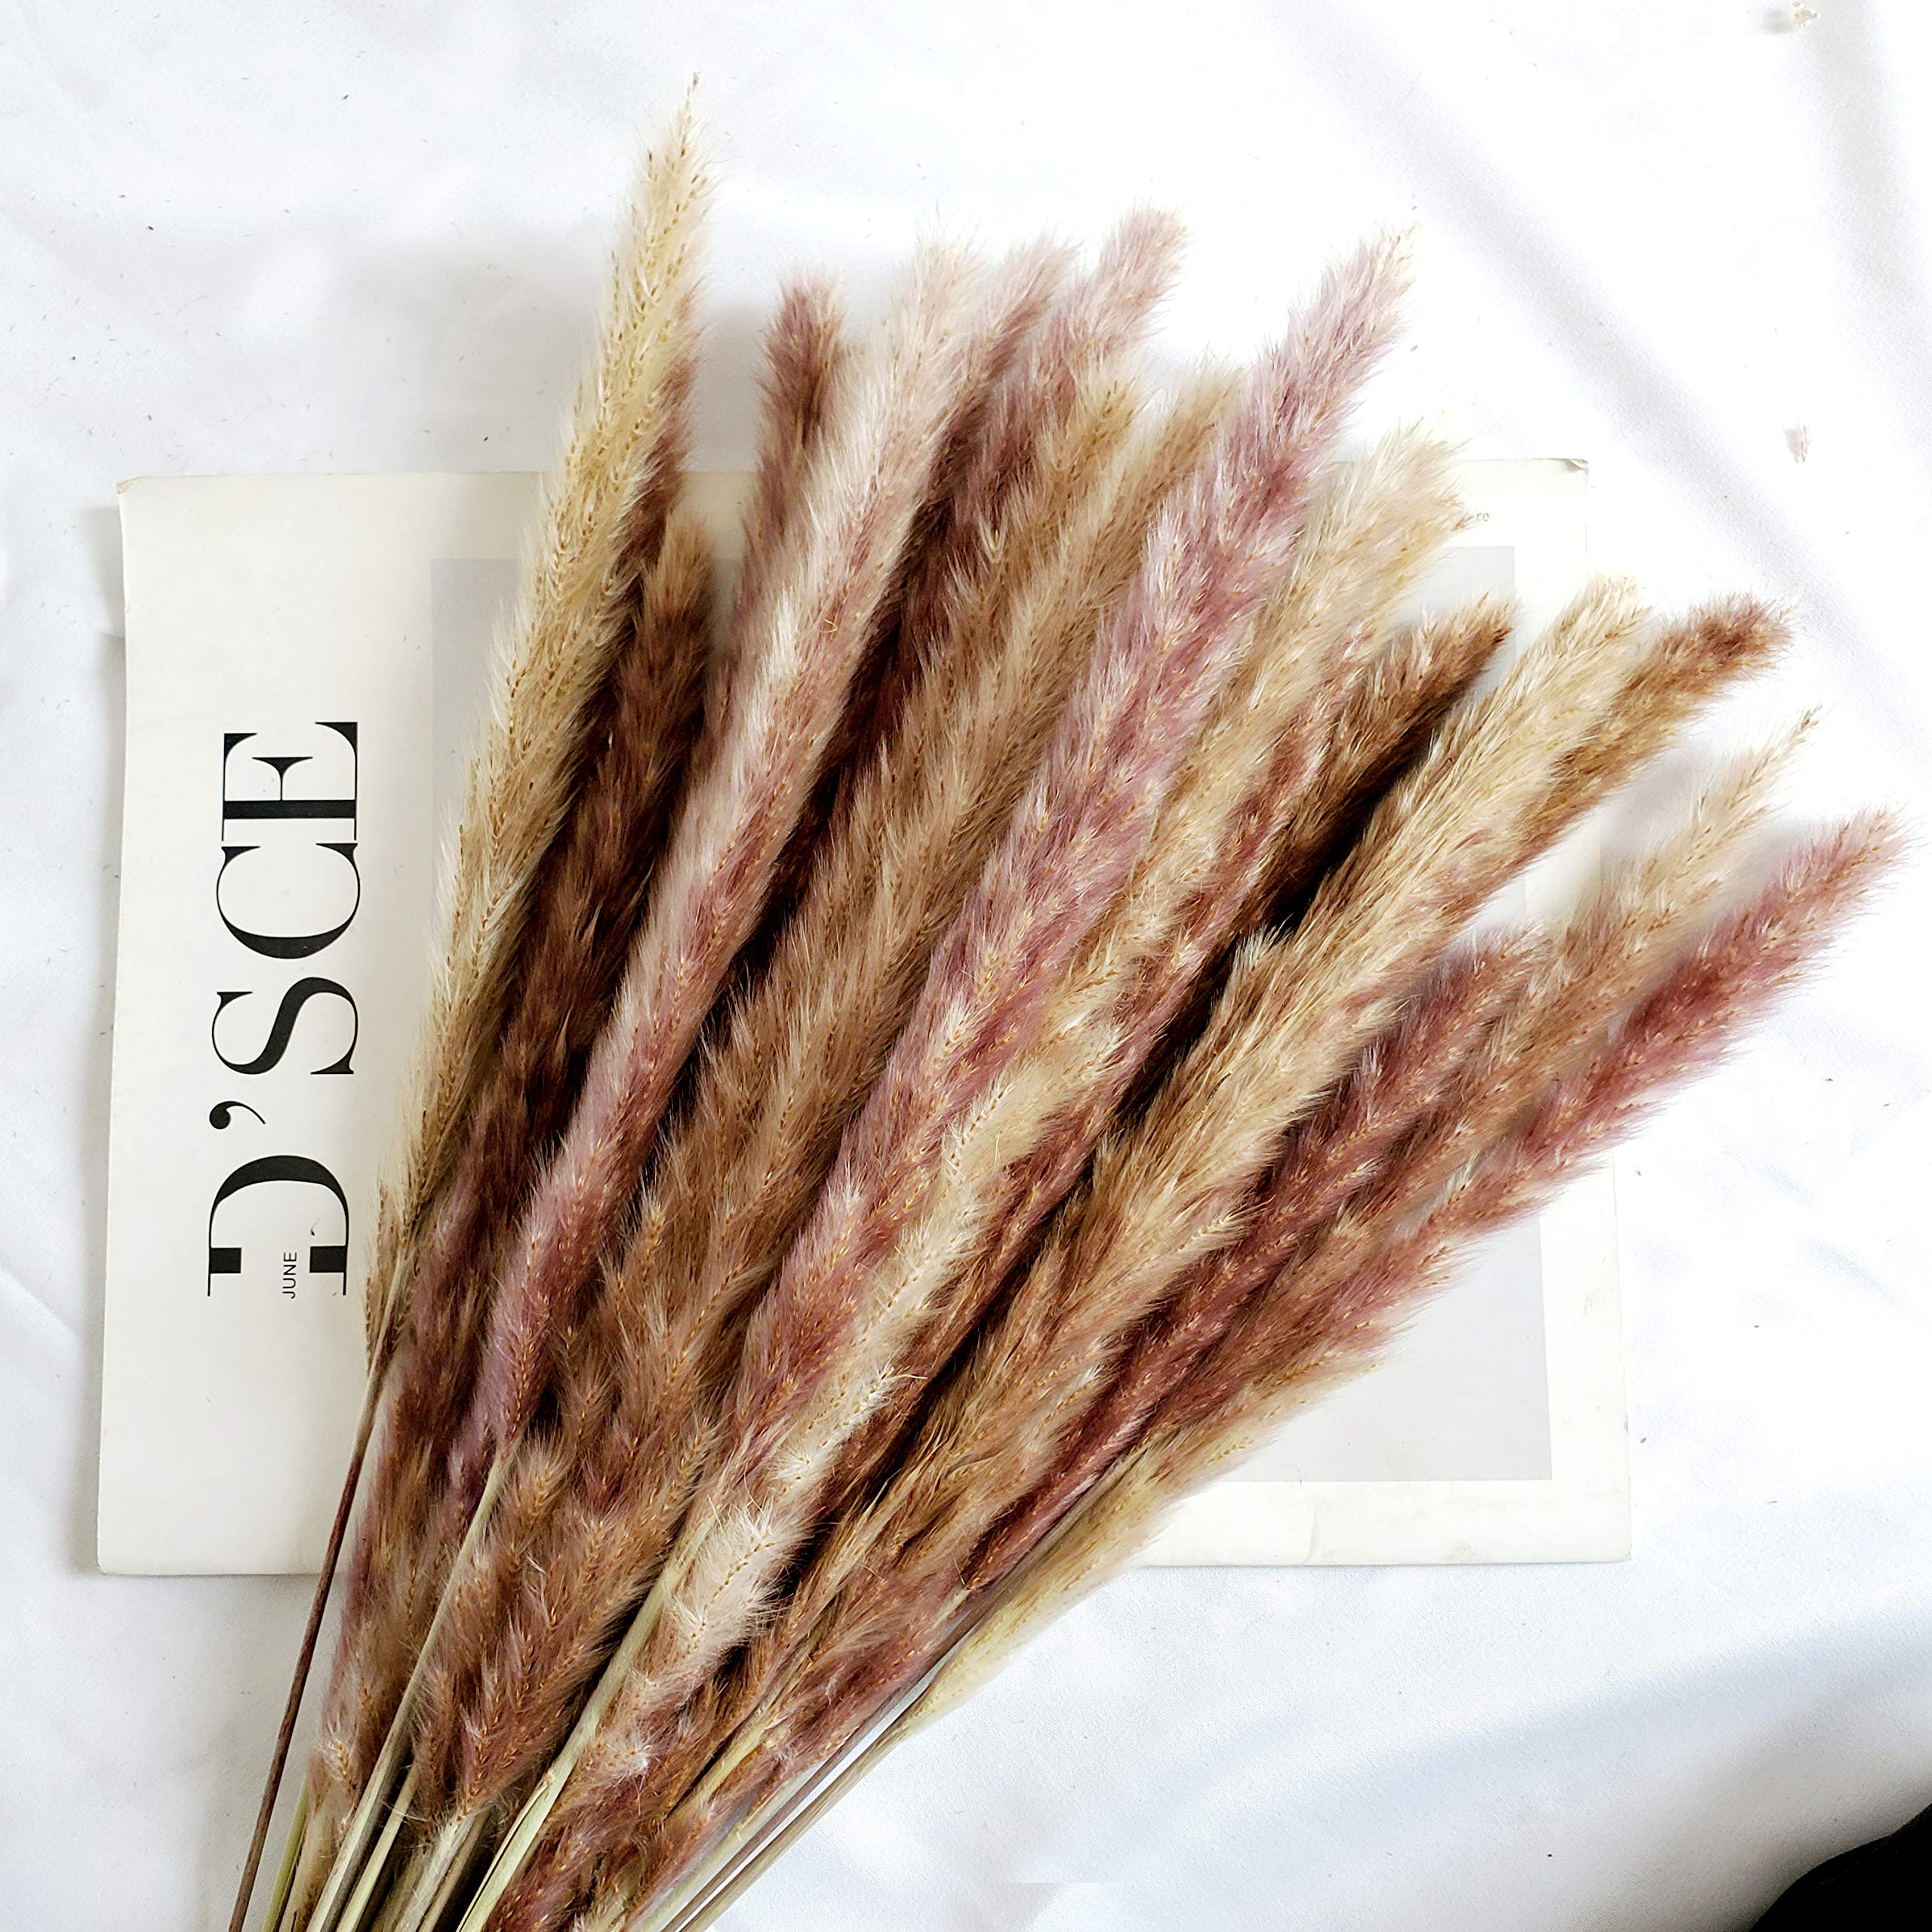 Beau Jour 45cm Natural Dried Pampas Grass 30pcs For Flower Arrangements Home Decor Artificial Dried Flora Amazon Com Au